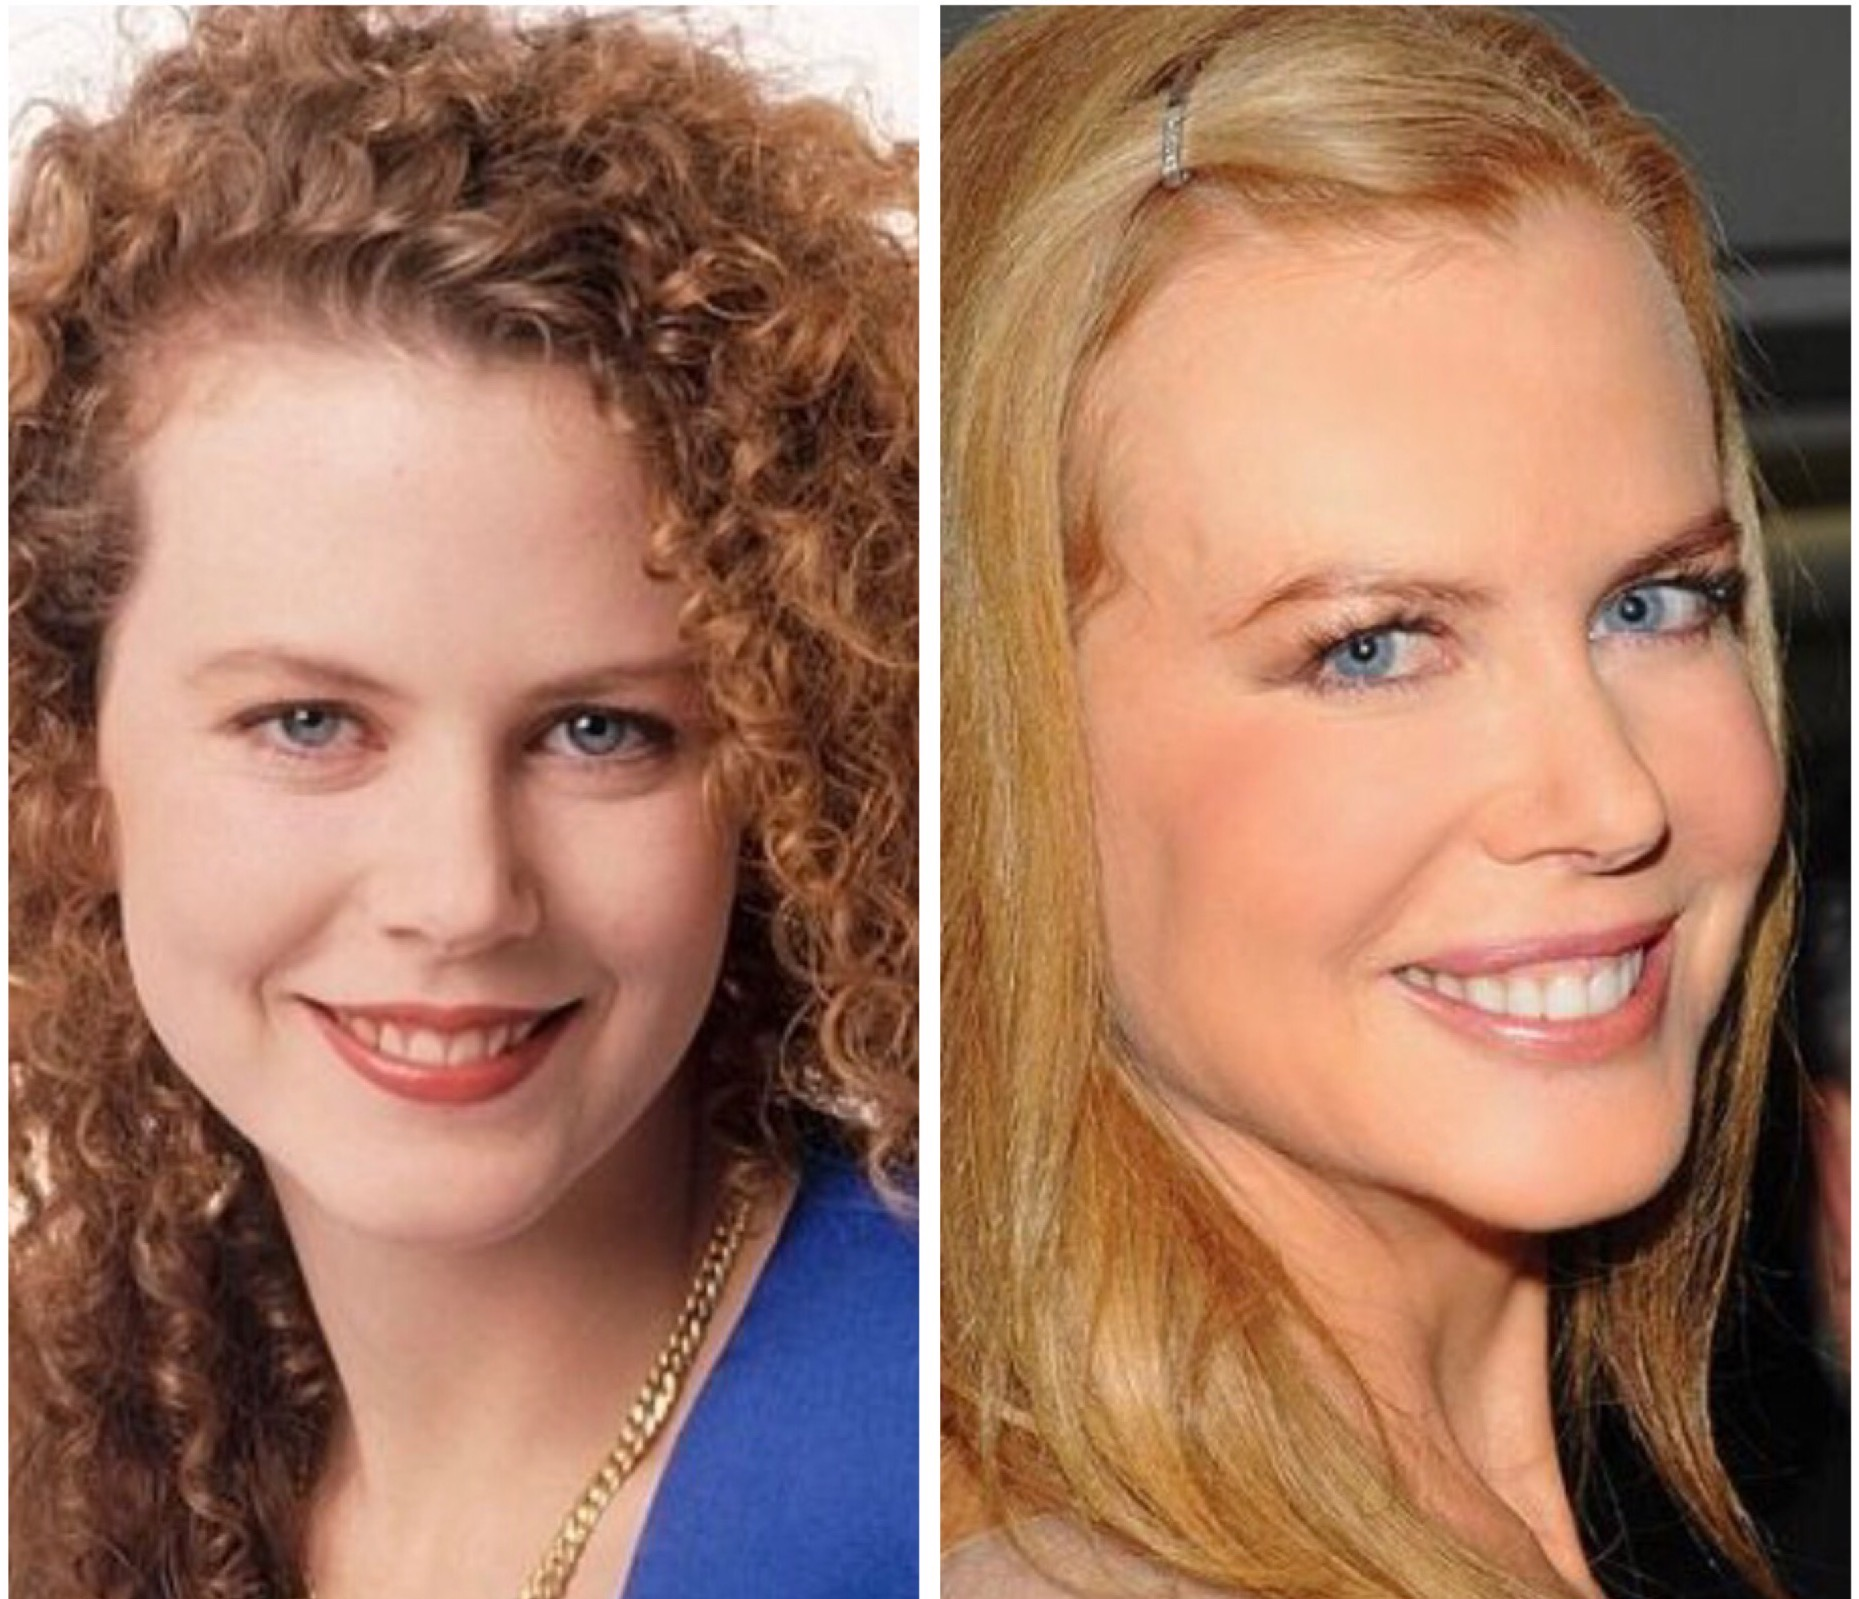 Actress Nicole Kidman ages beautifully. In these photos, the obvious difference (besides hairstyle)  are largely due to changes in  facial fat distribution (less fat in the temples, forehead, and sides of face).